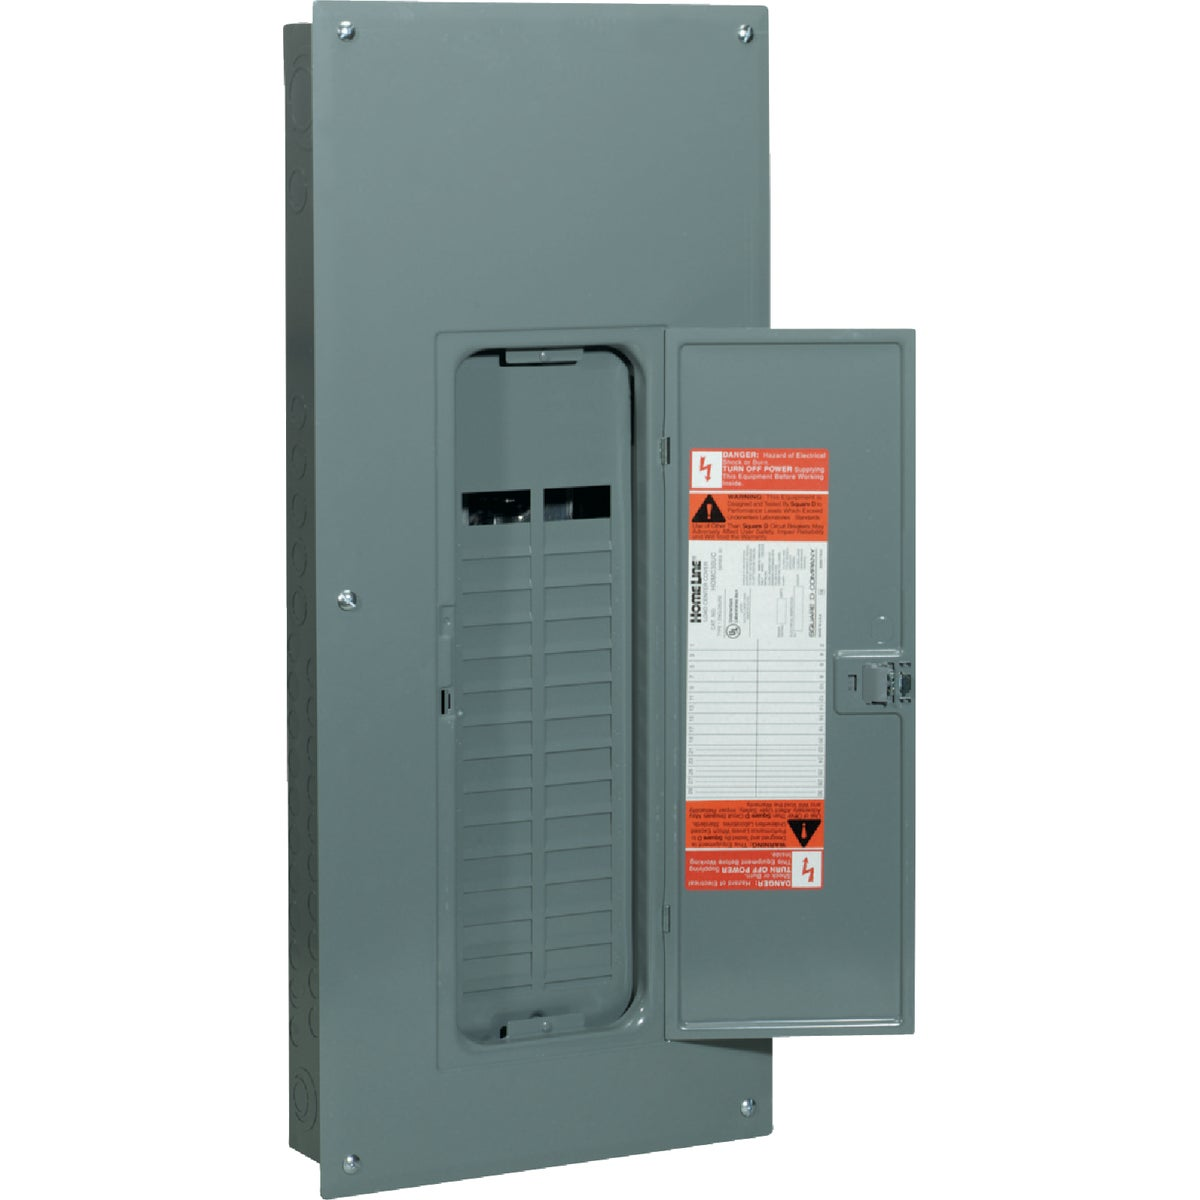 200A LOAD CENTER - HOM30L200C by Square D Co